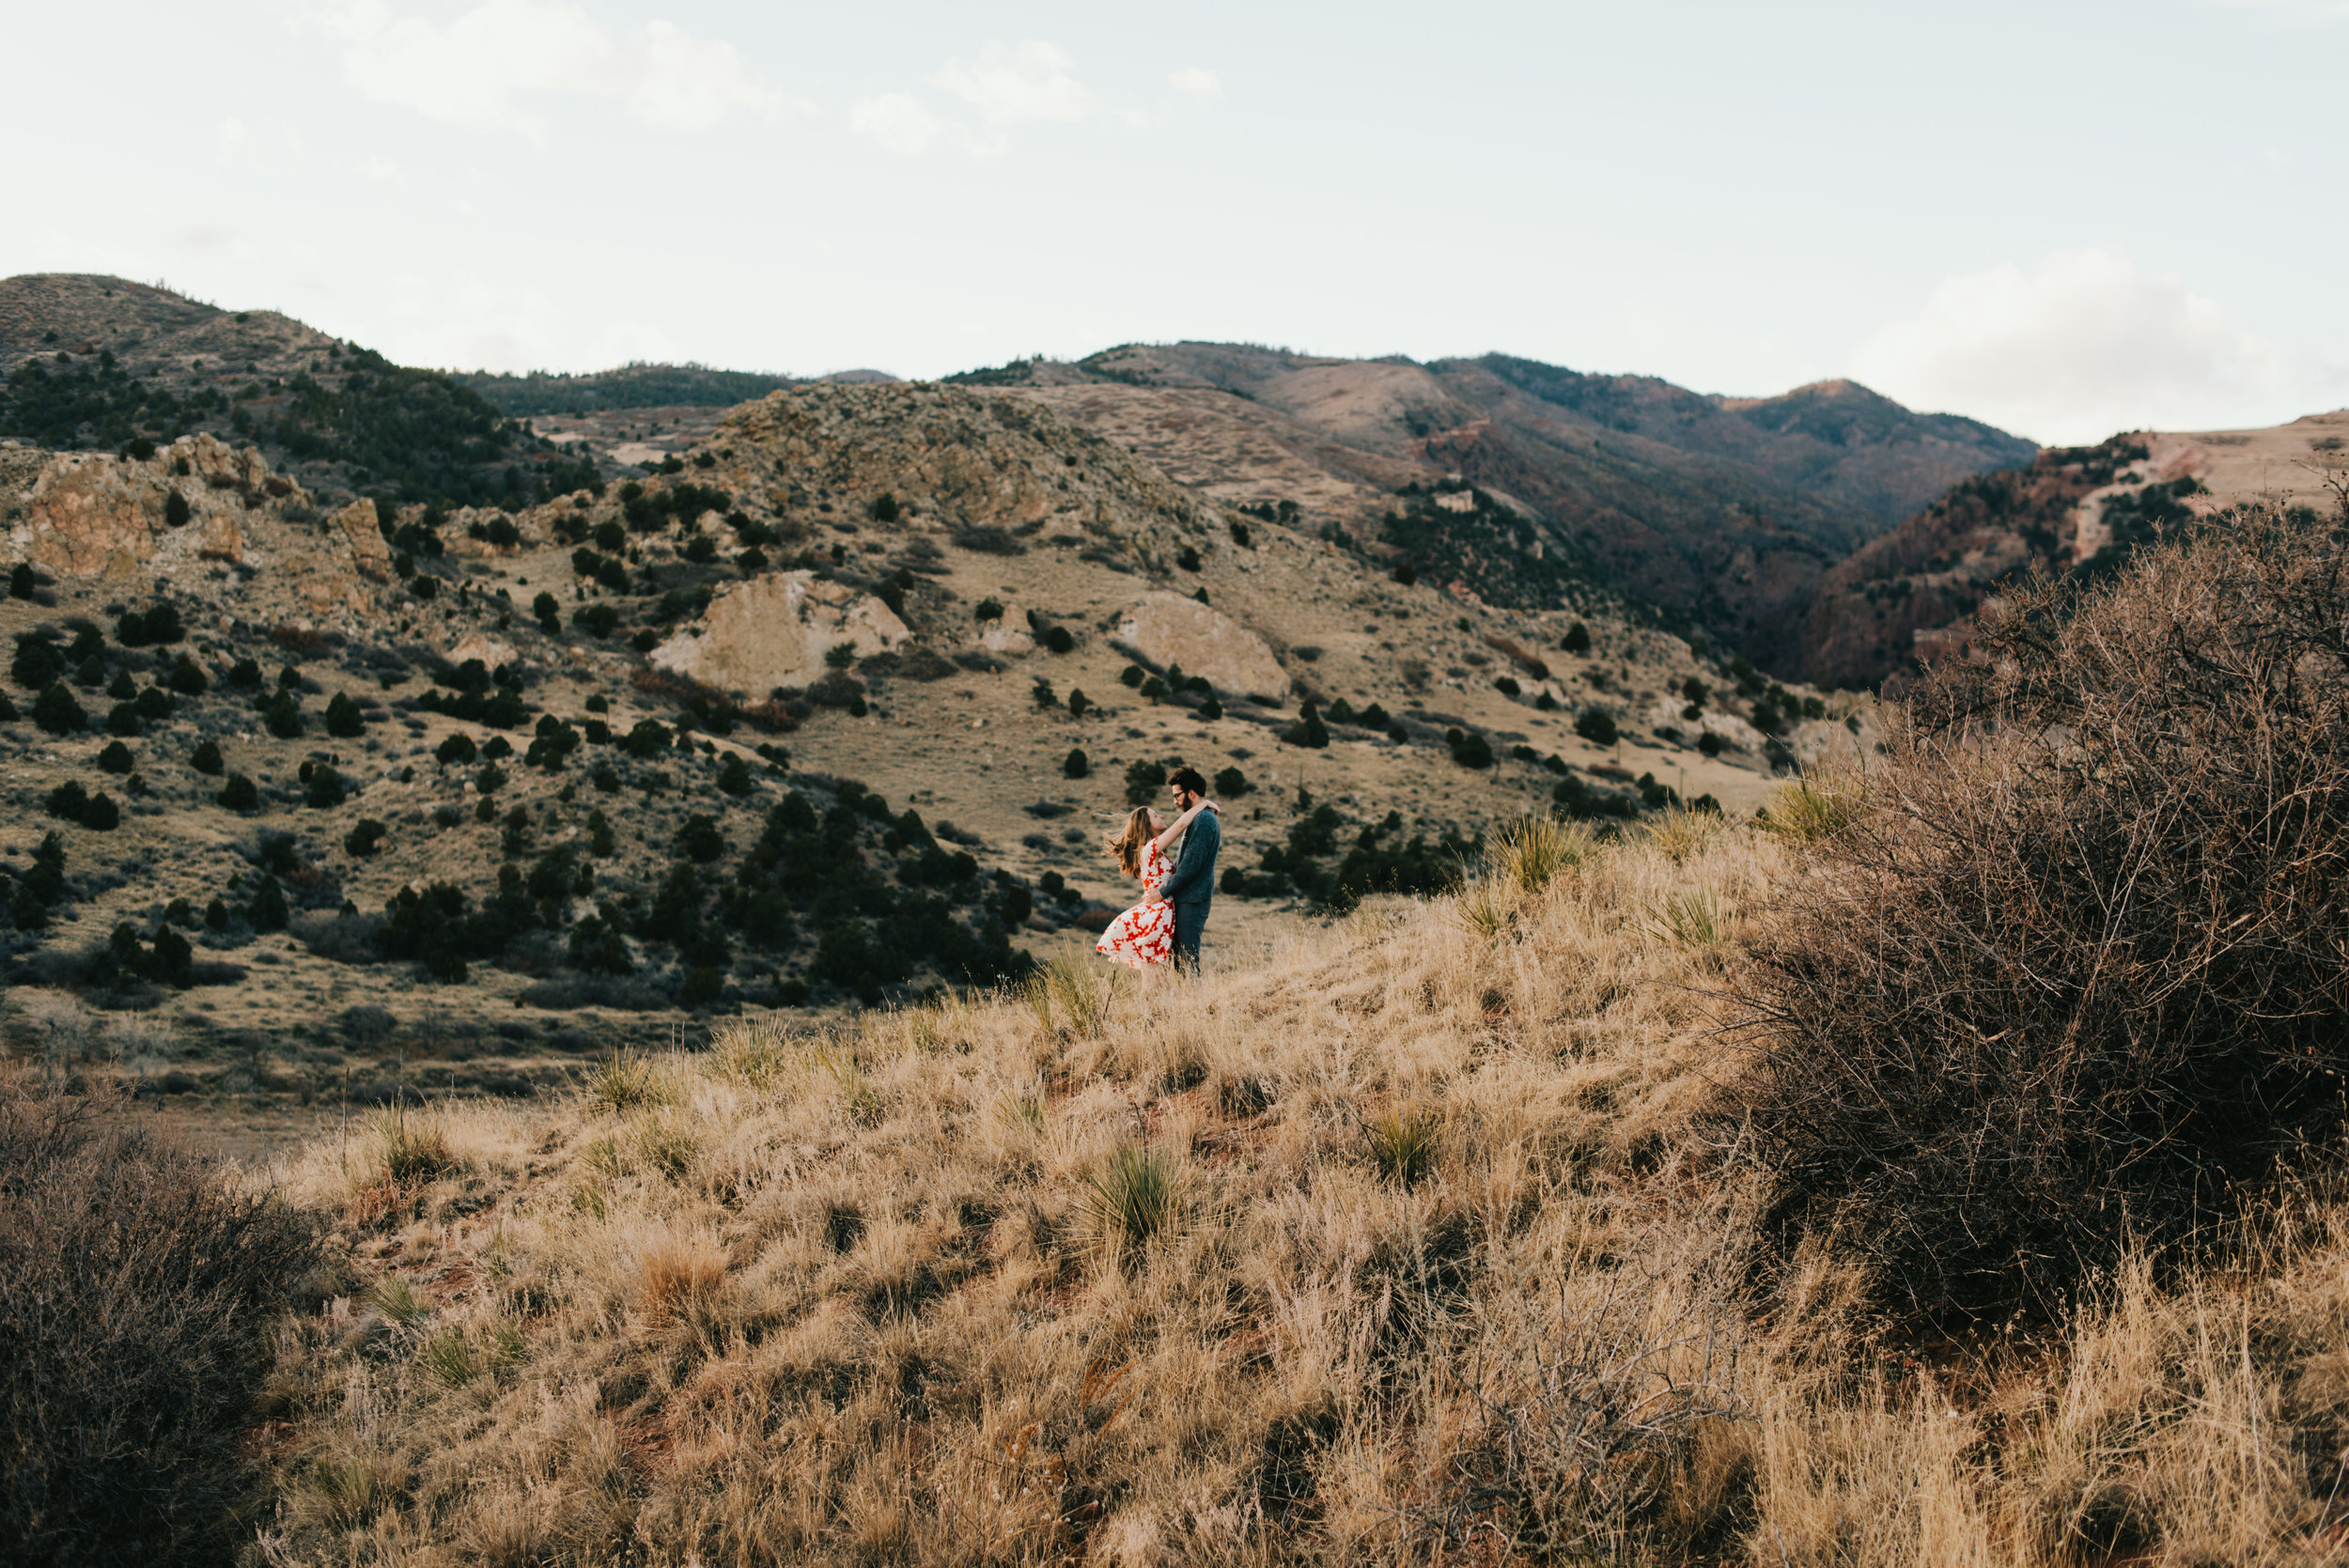 Rachel and Ted embracing in the hills of Colorado Springs.